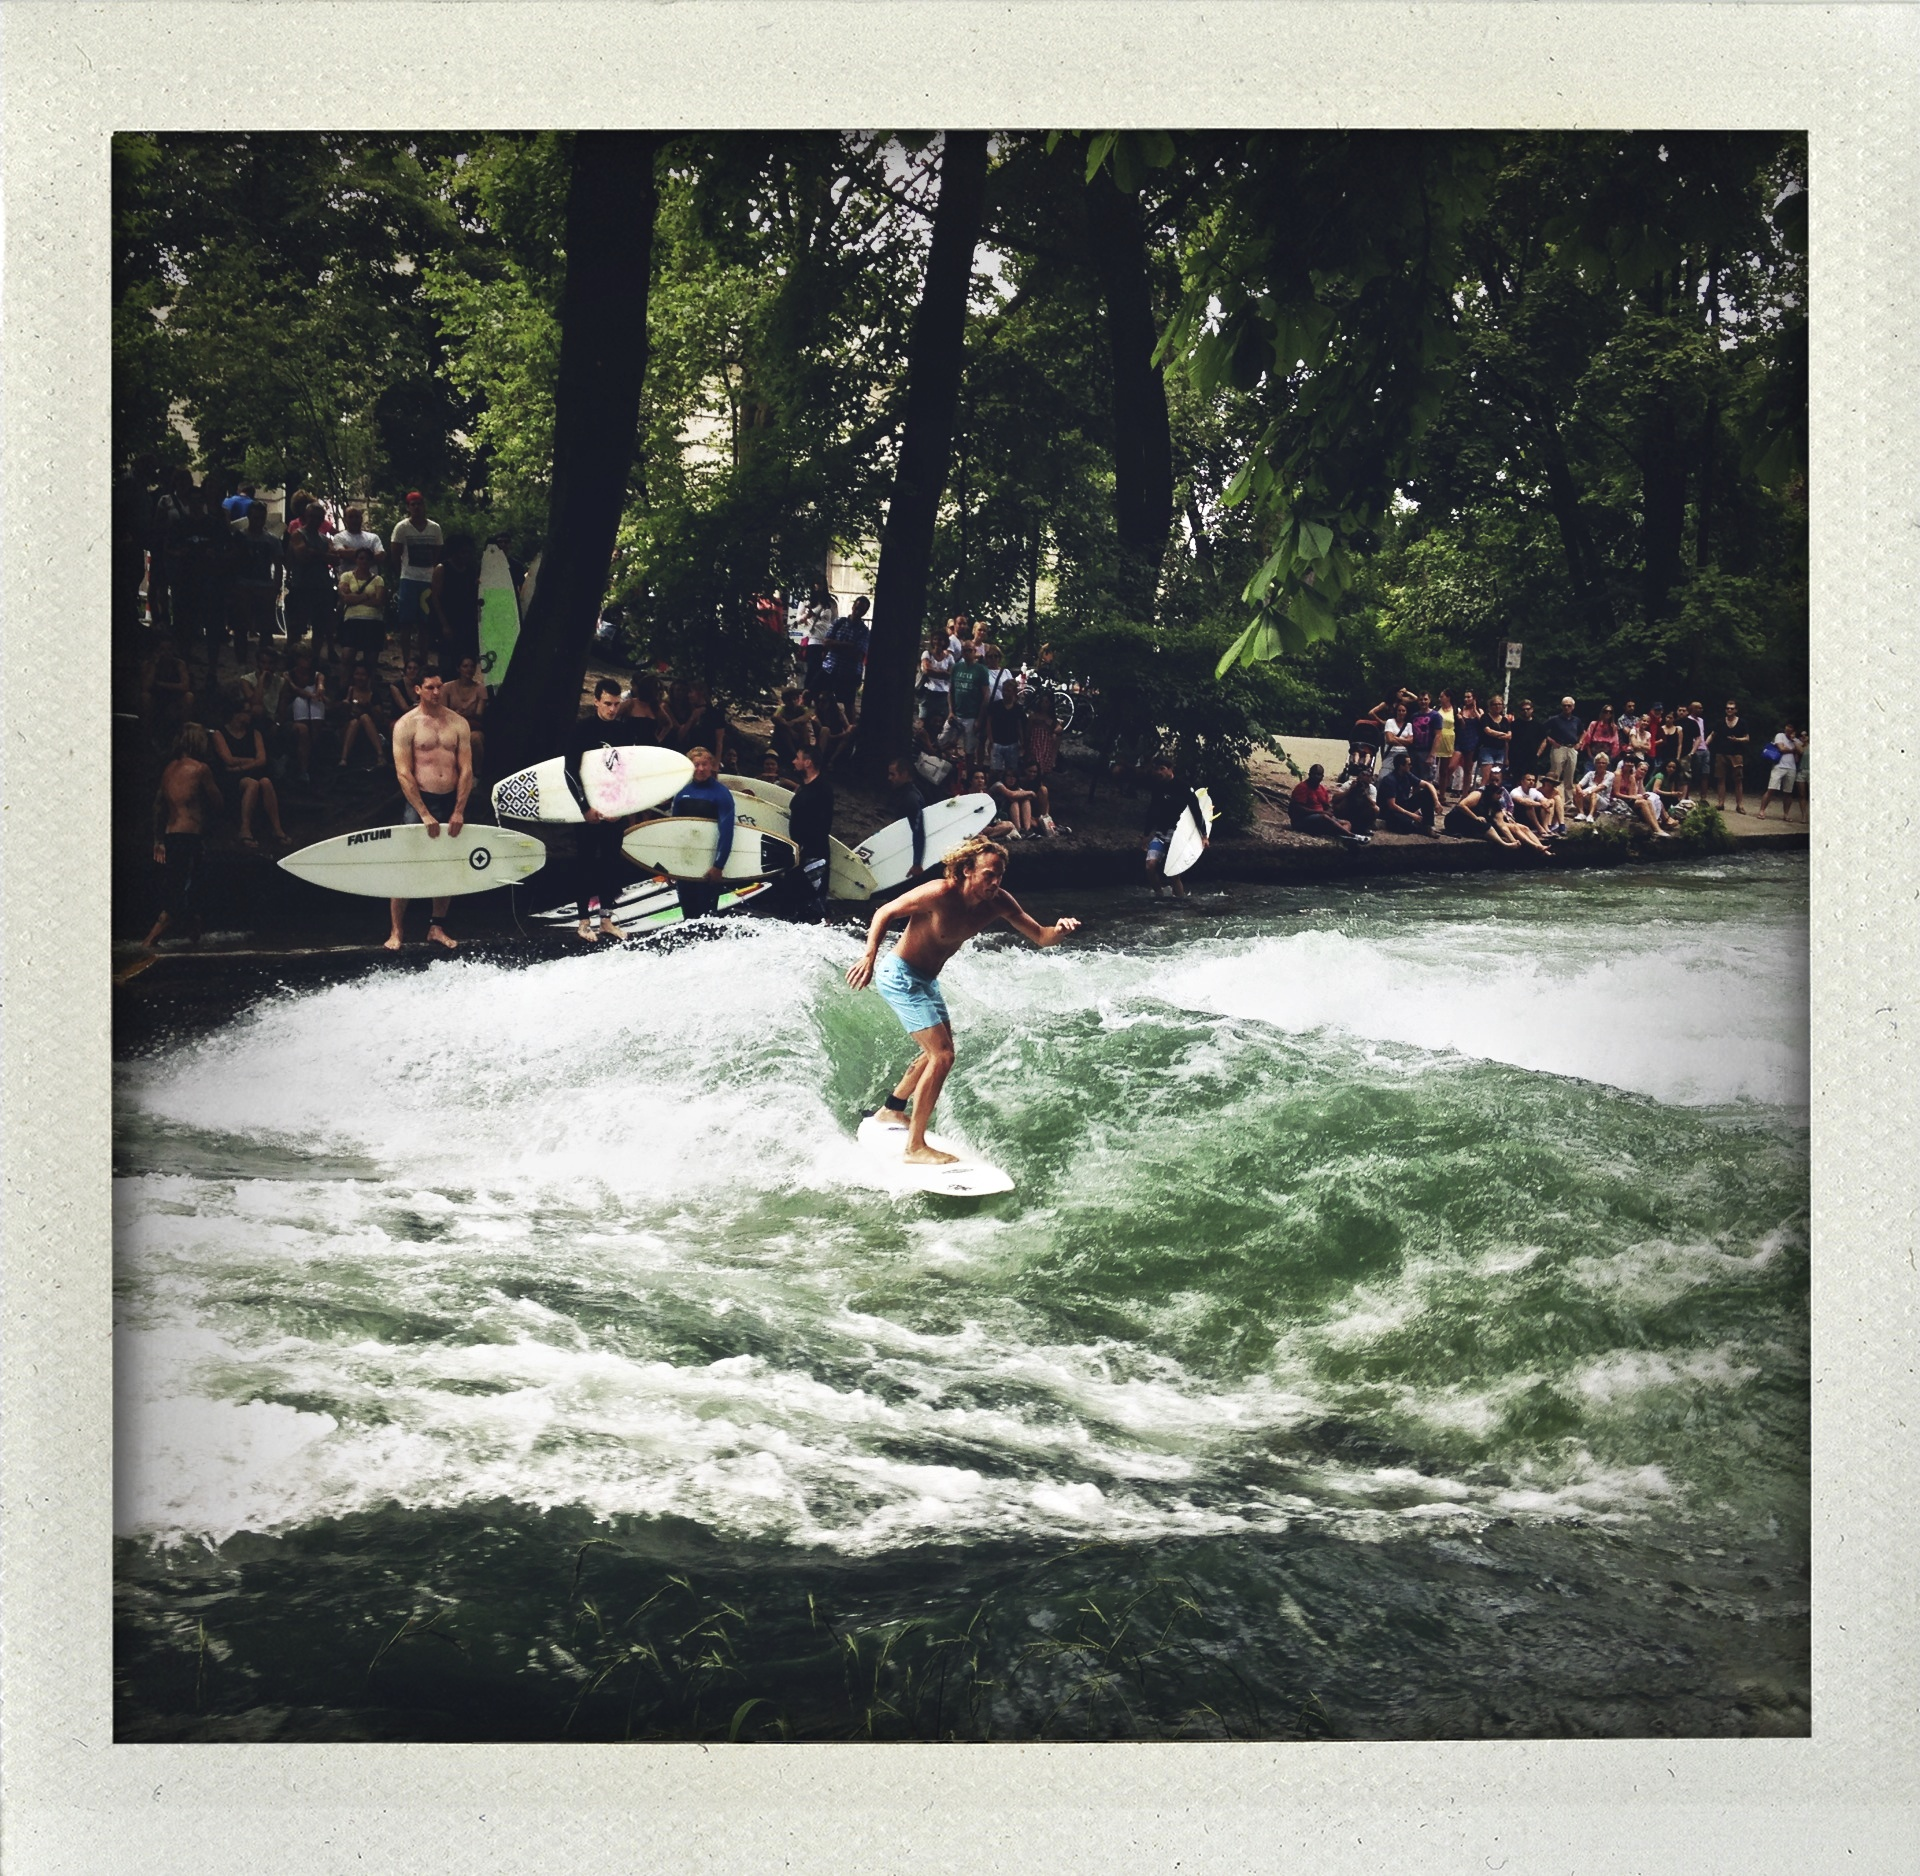 Permission to surf the river.